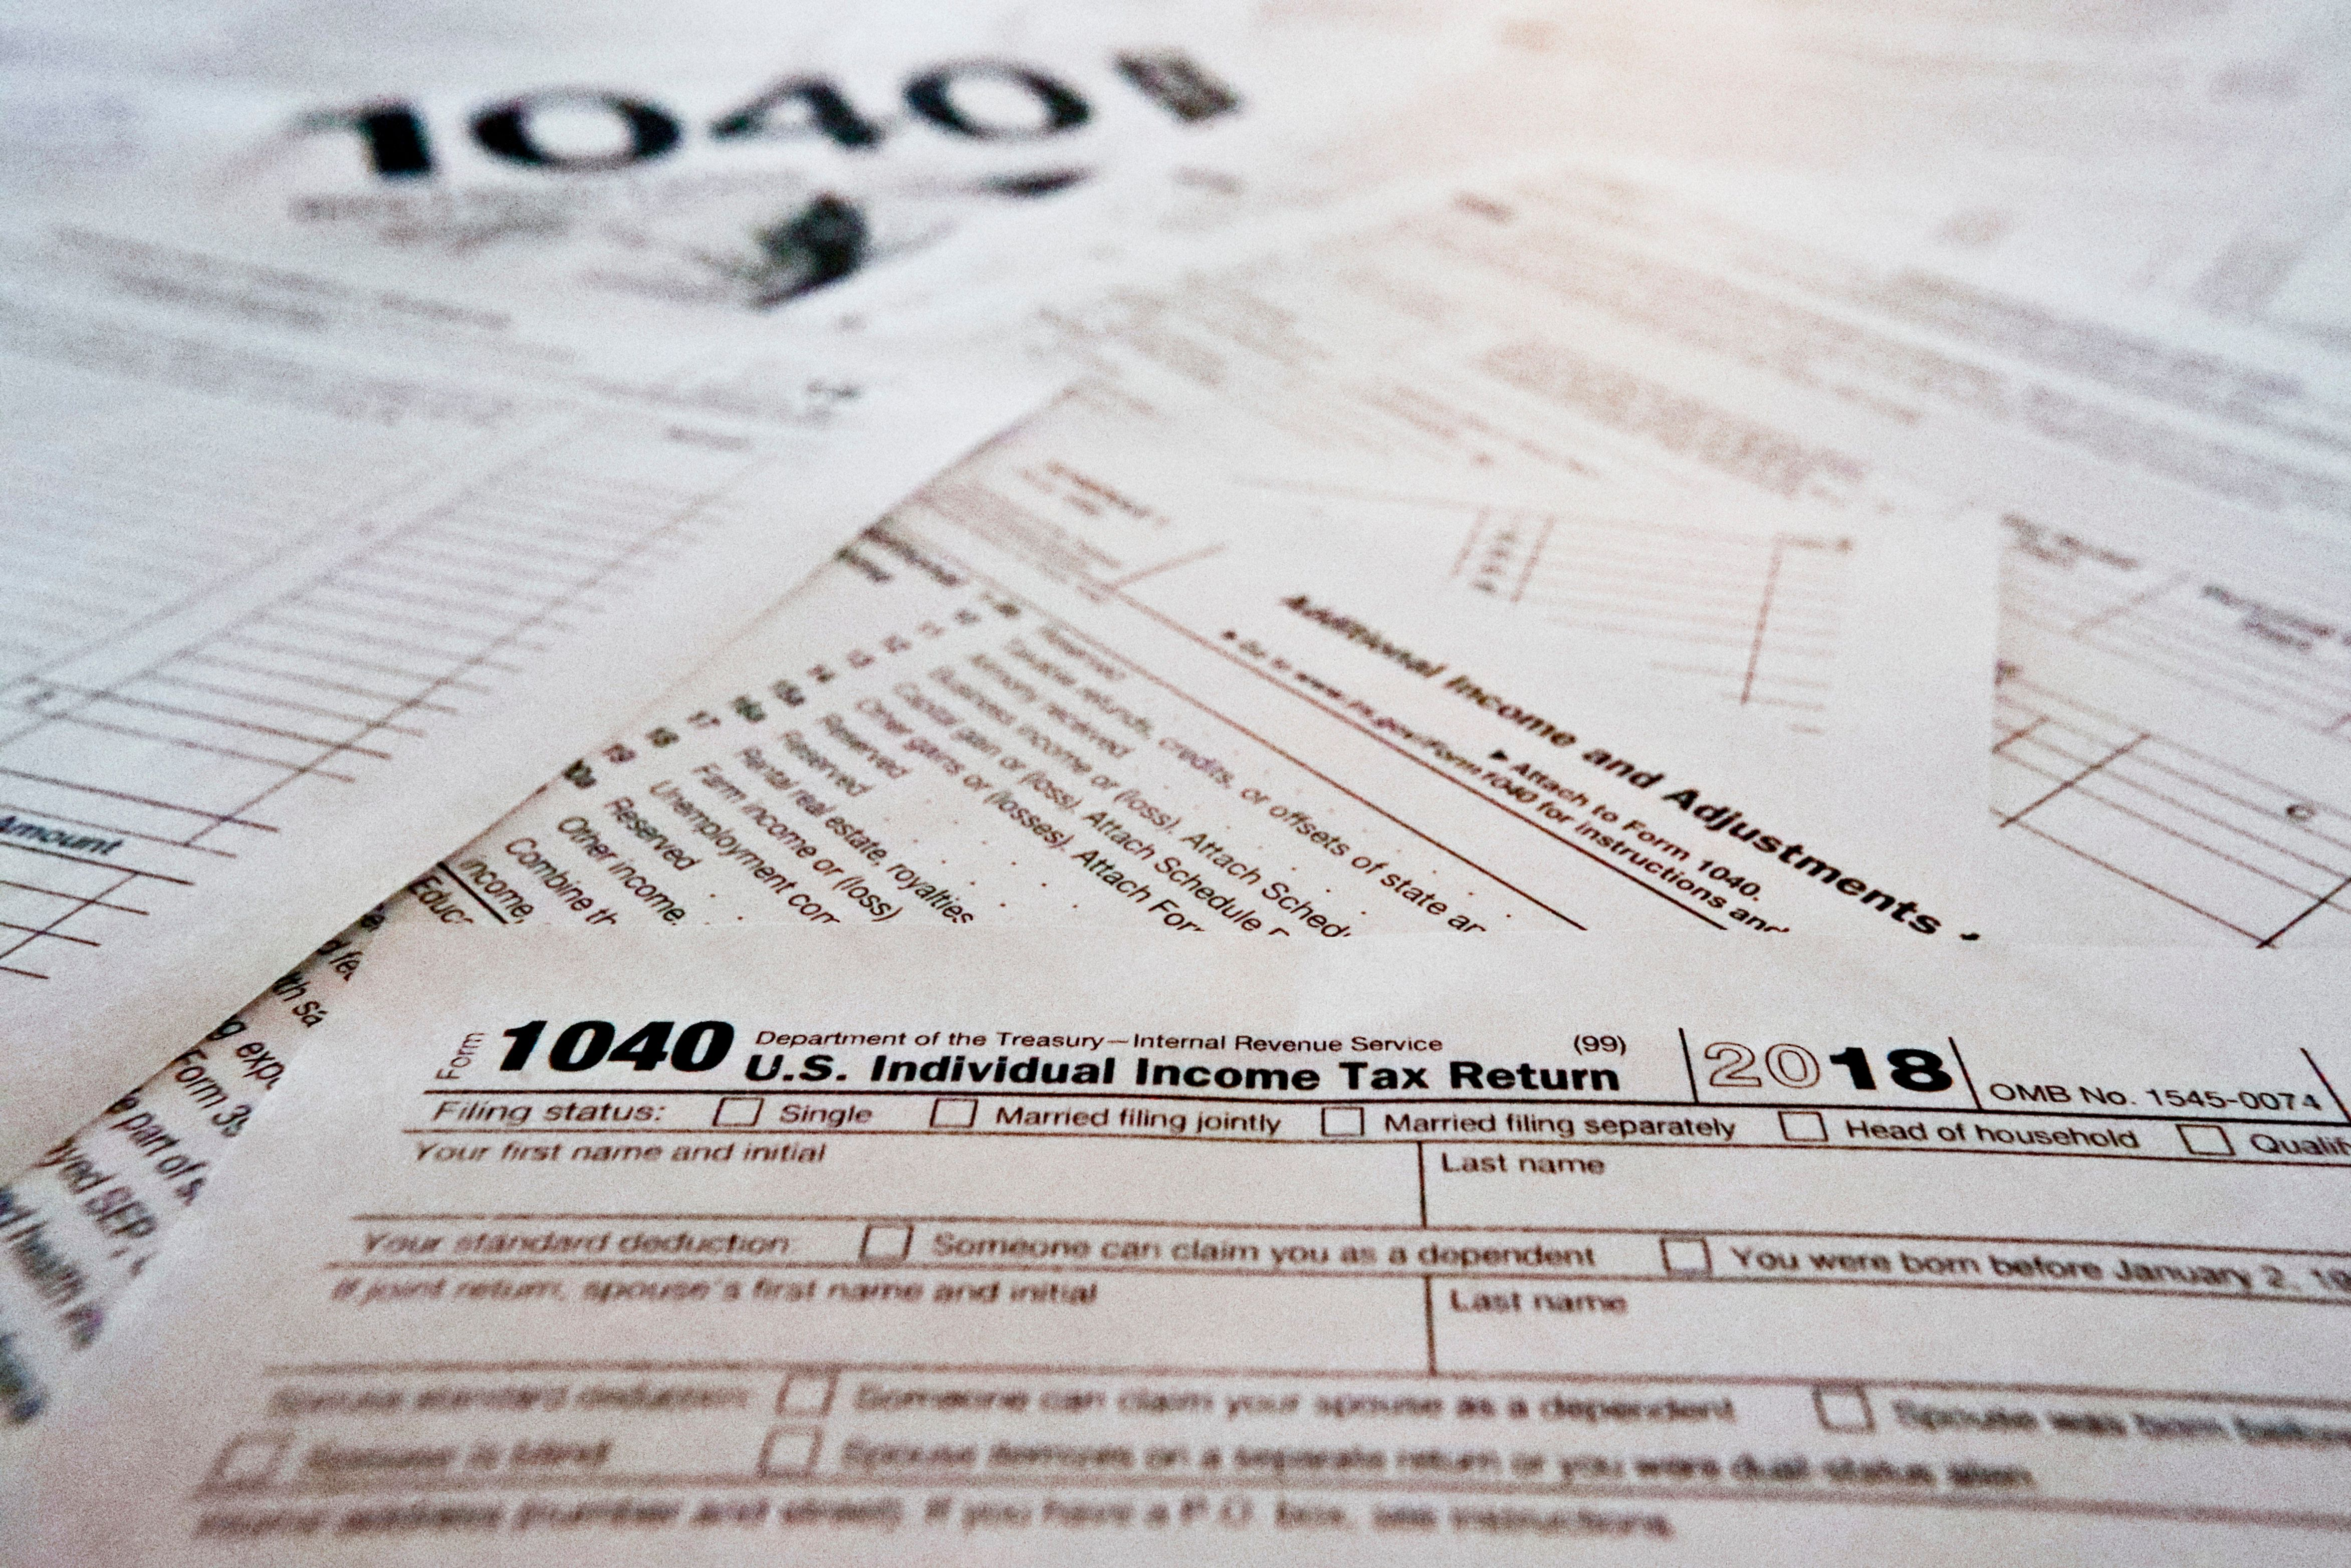 Drop In Average Tax Refunds Nearly Doubles Within Days